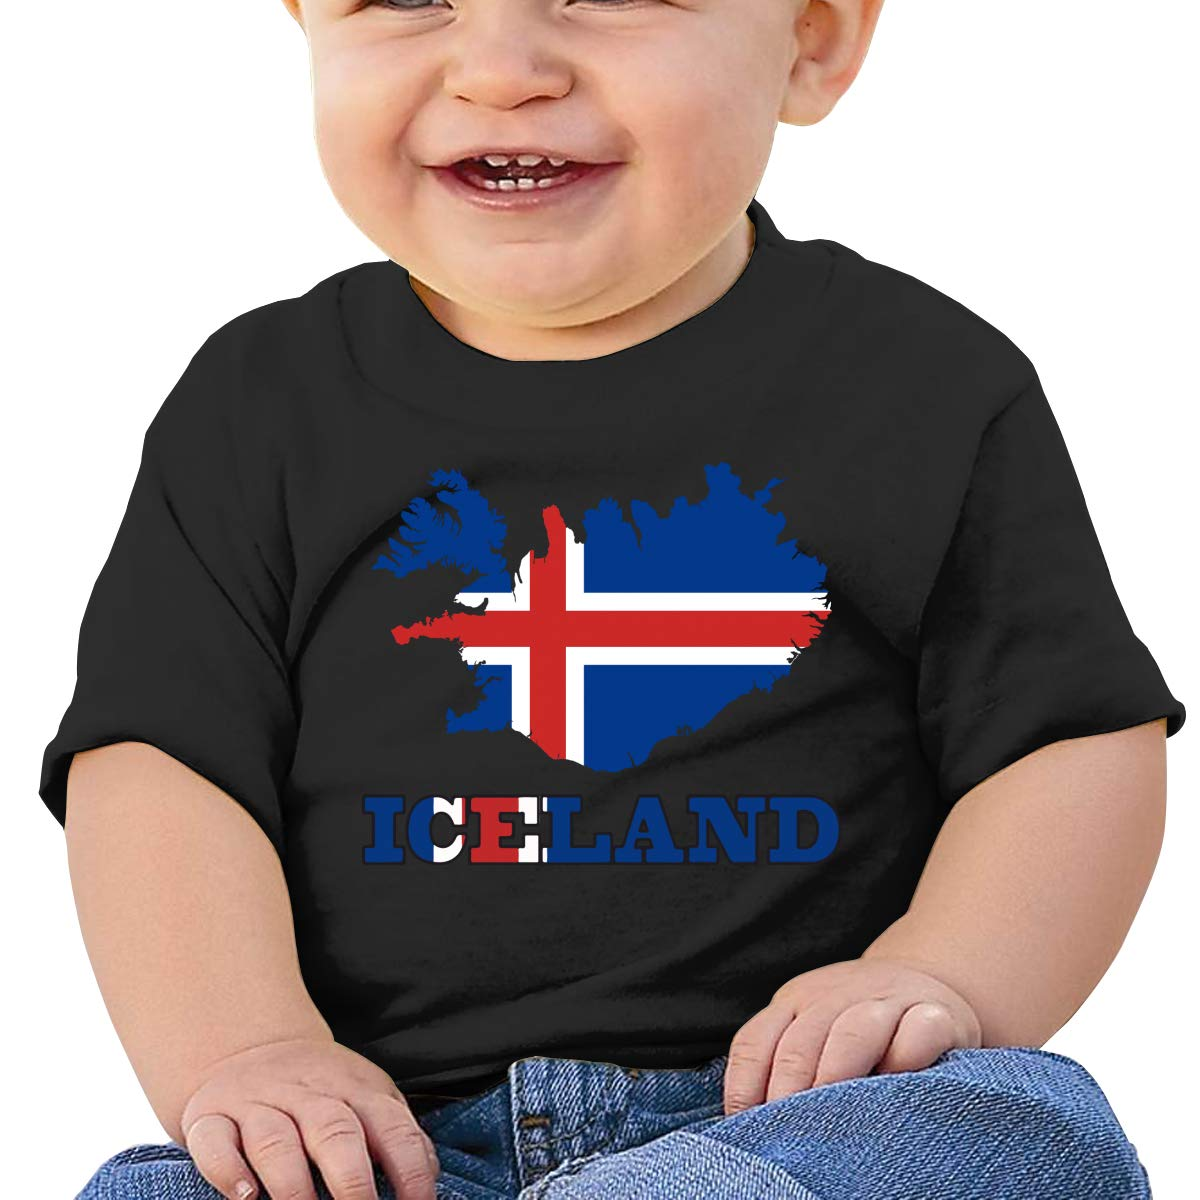 JVNSS Iceland Flag Map Baby T-Shirt Toddler//Infant Cotton T Shirts Fashion Graphic Tees for 6M-2T Baby